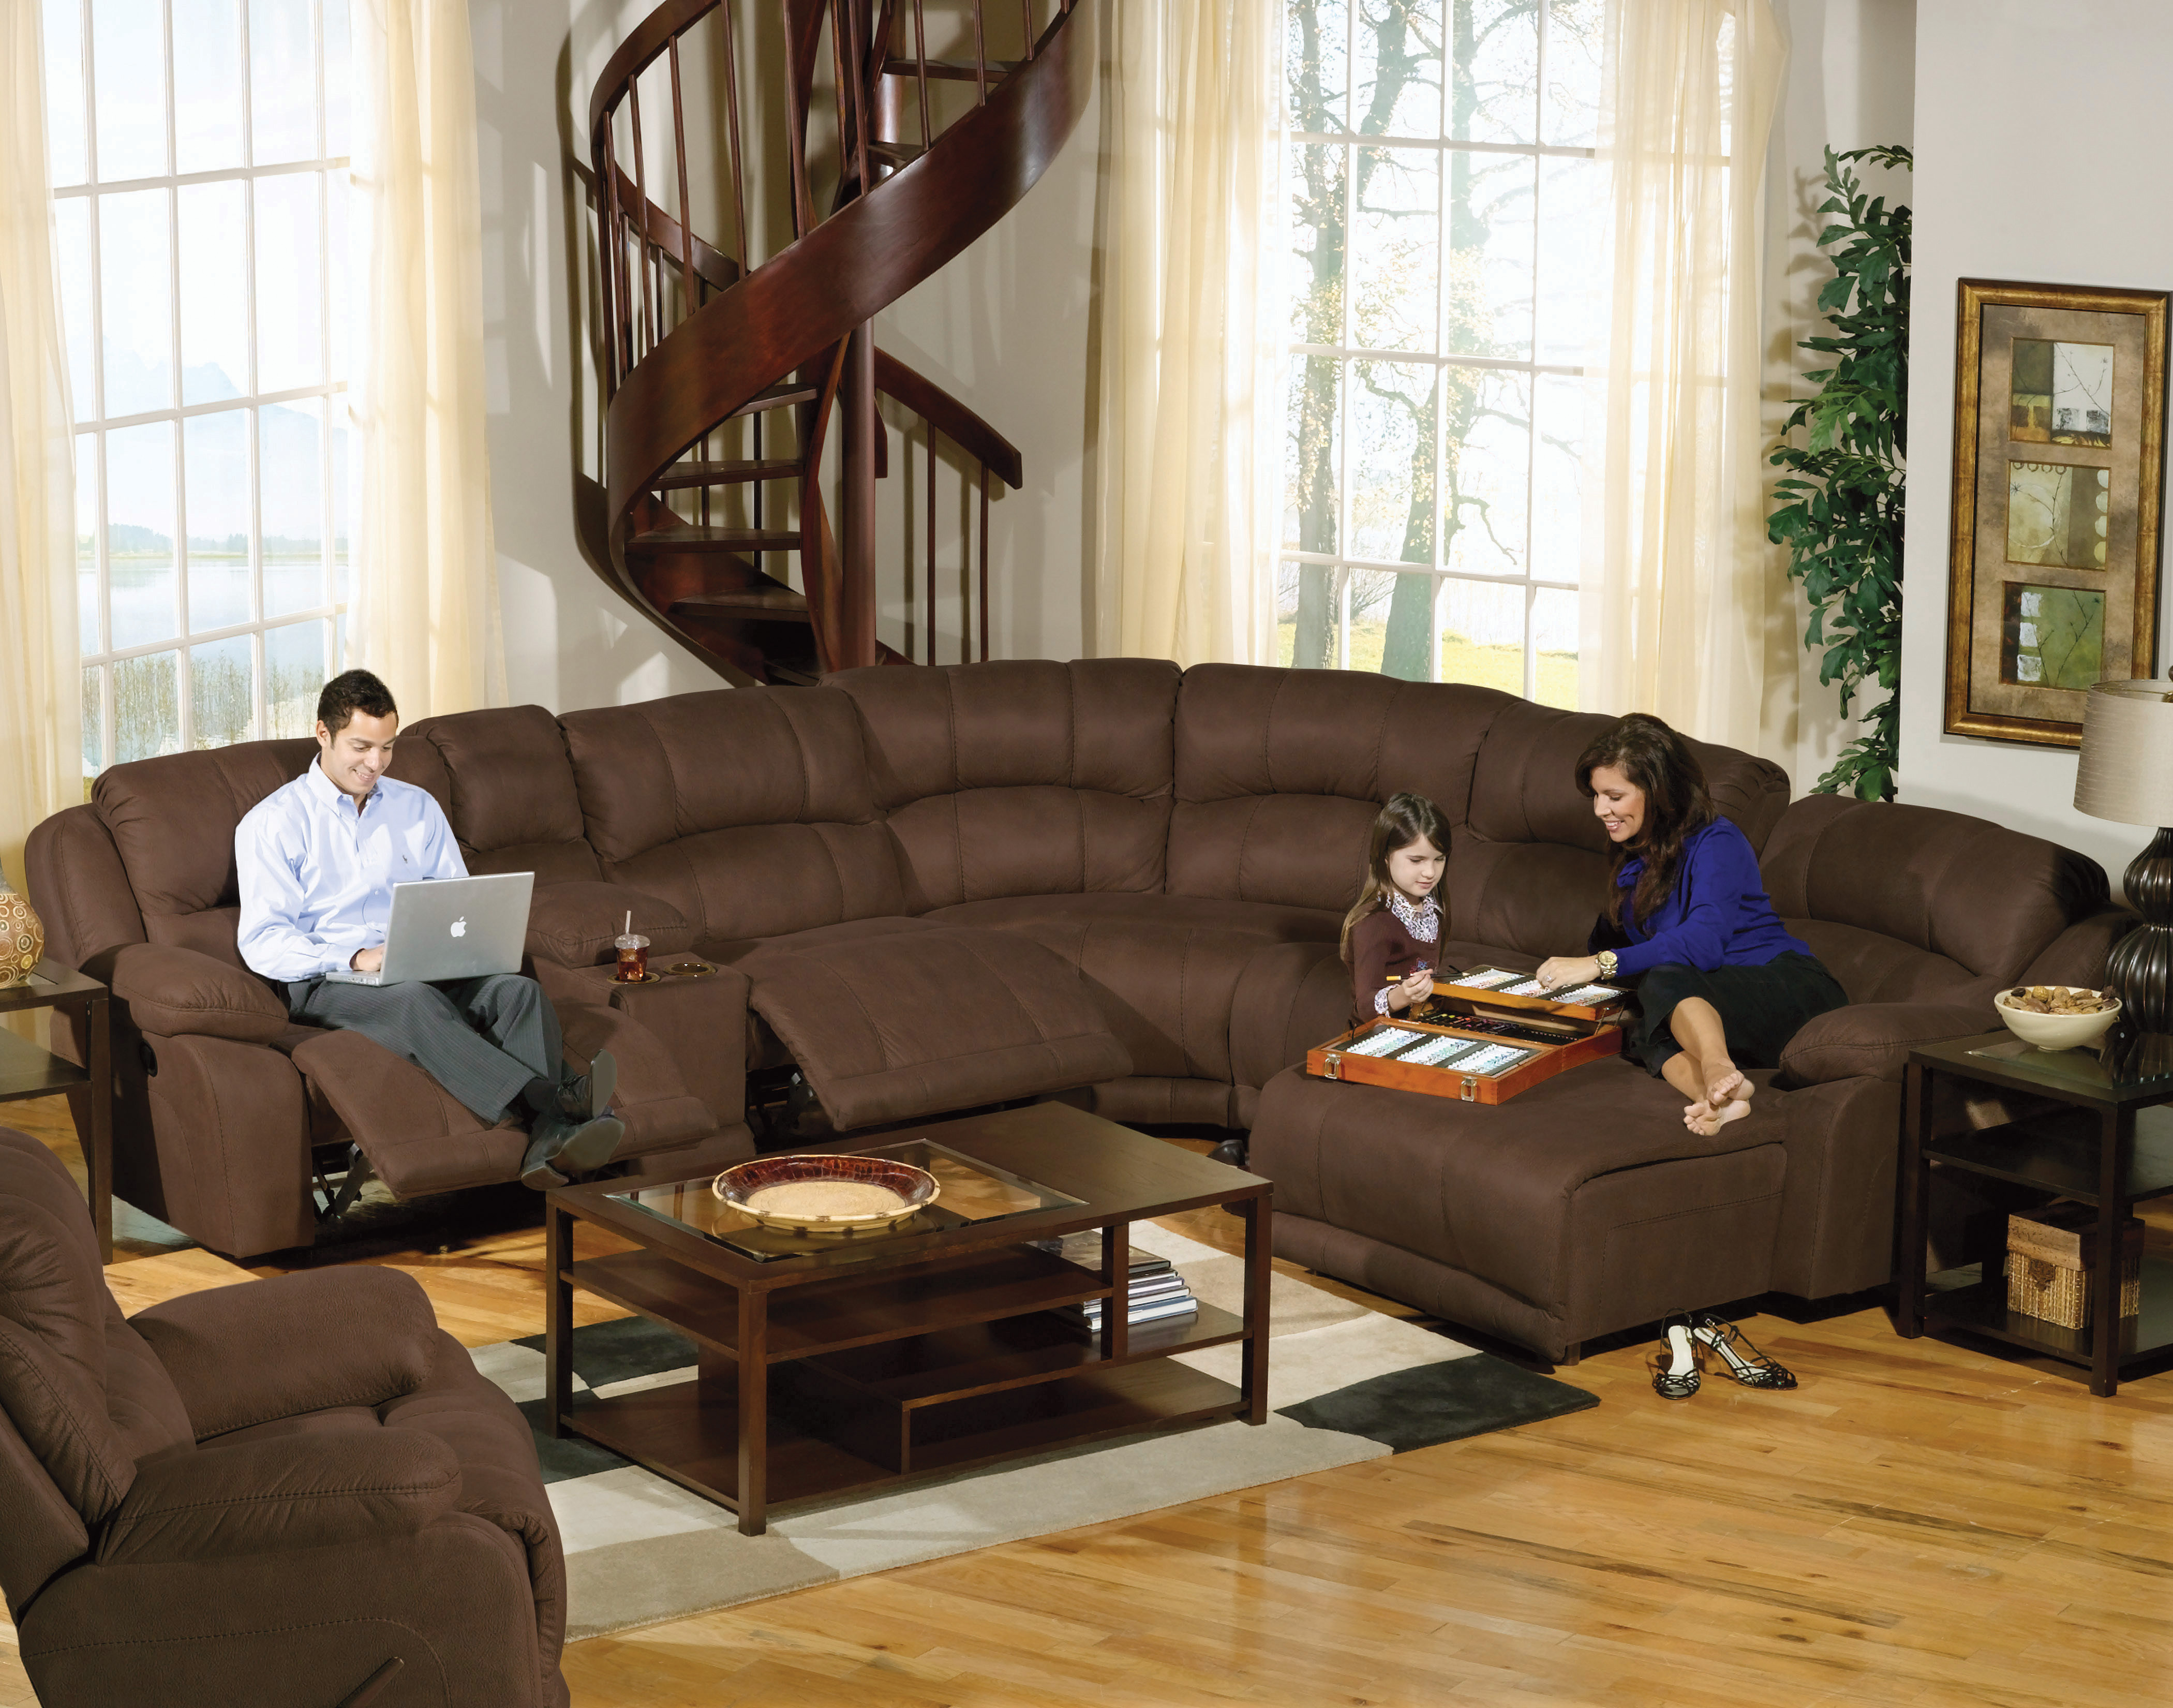 Buy large sectional sofas perfect for your large living room  darbylanefurniturecom